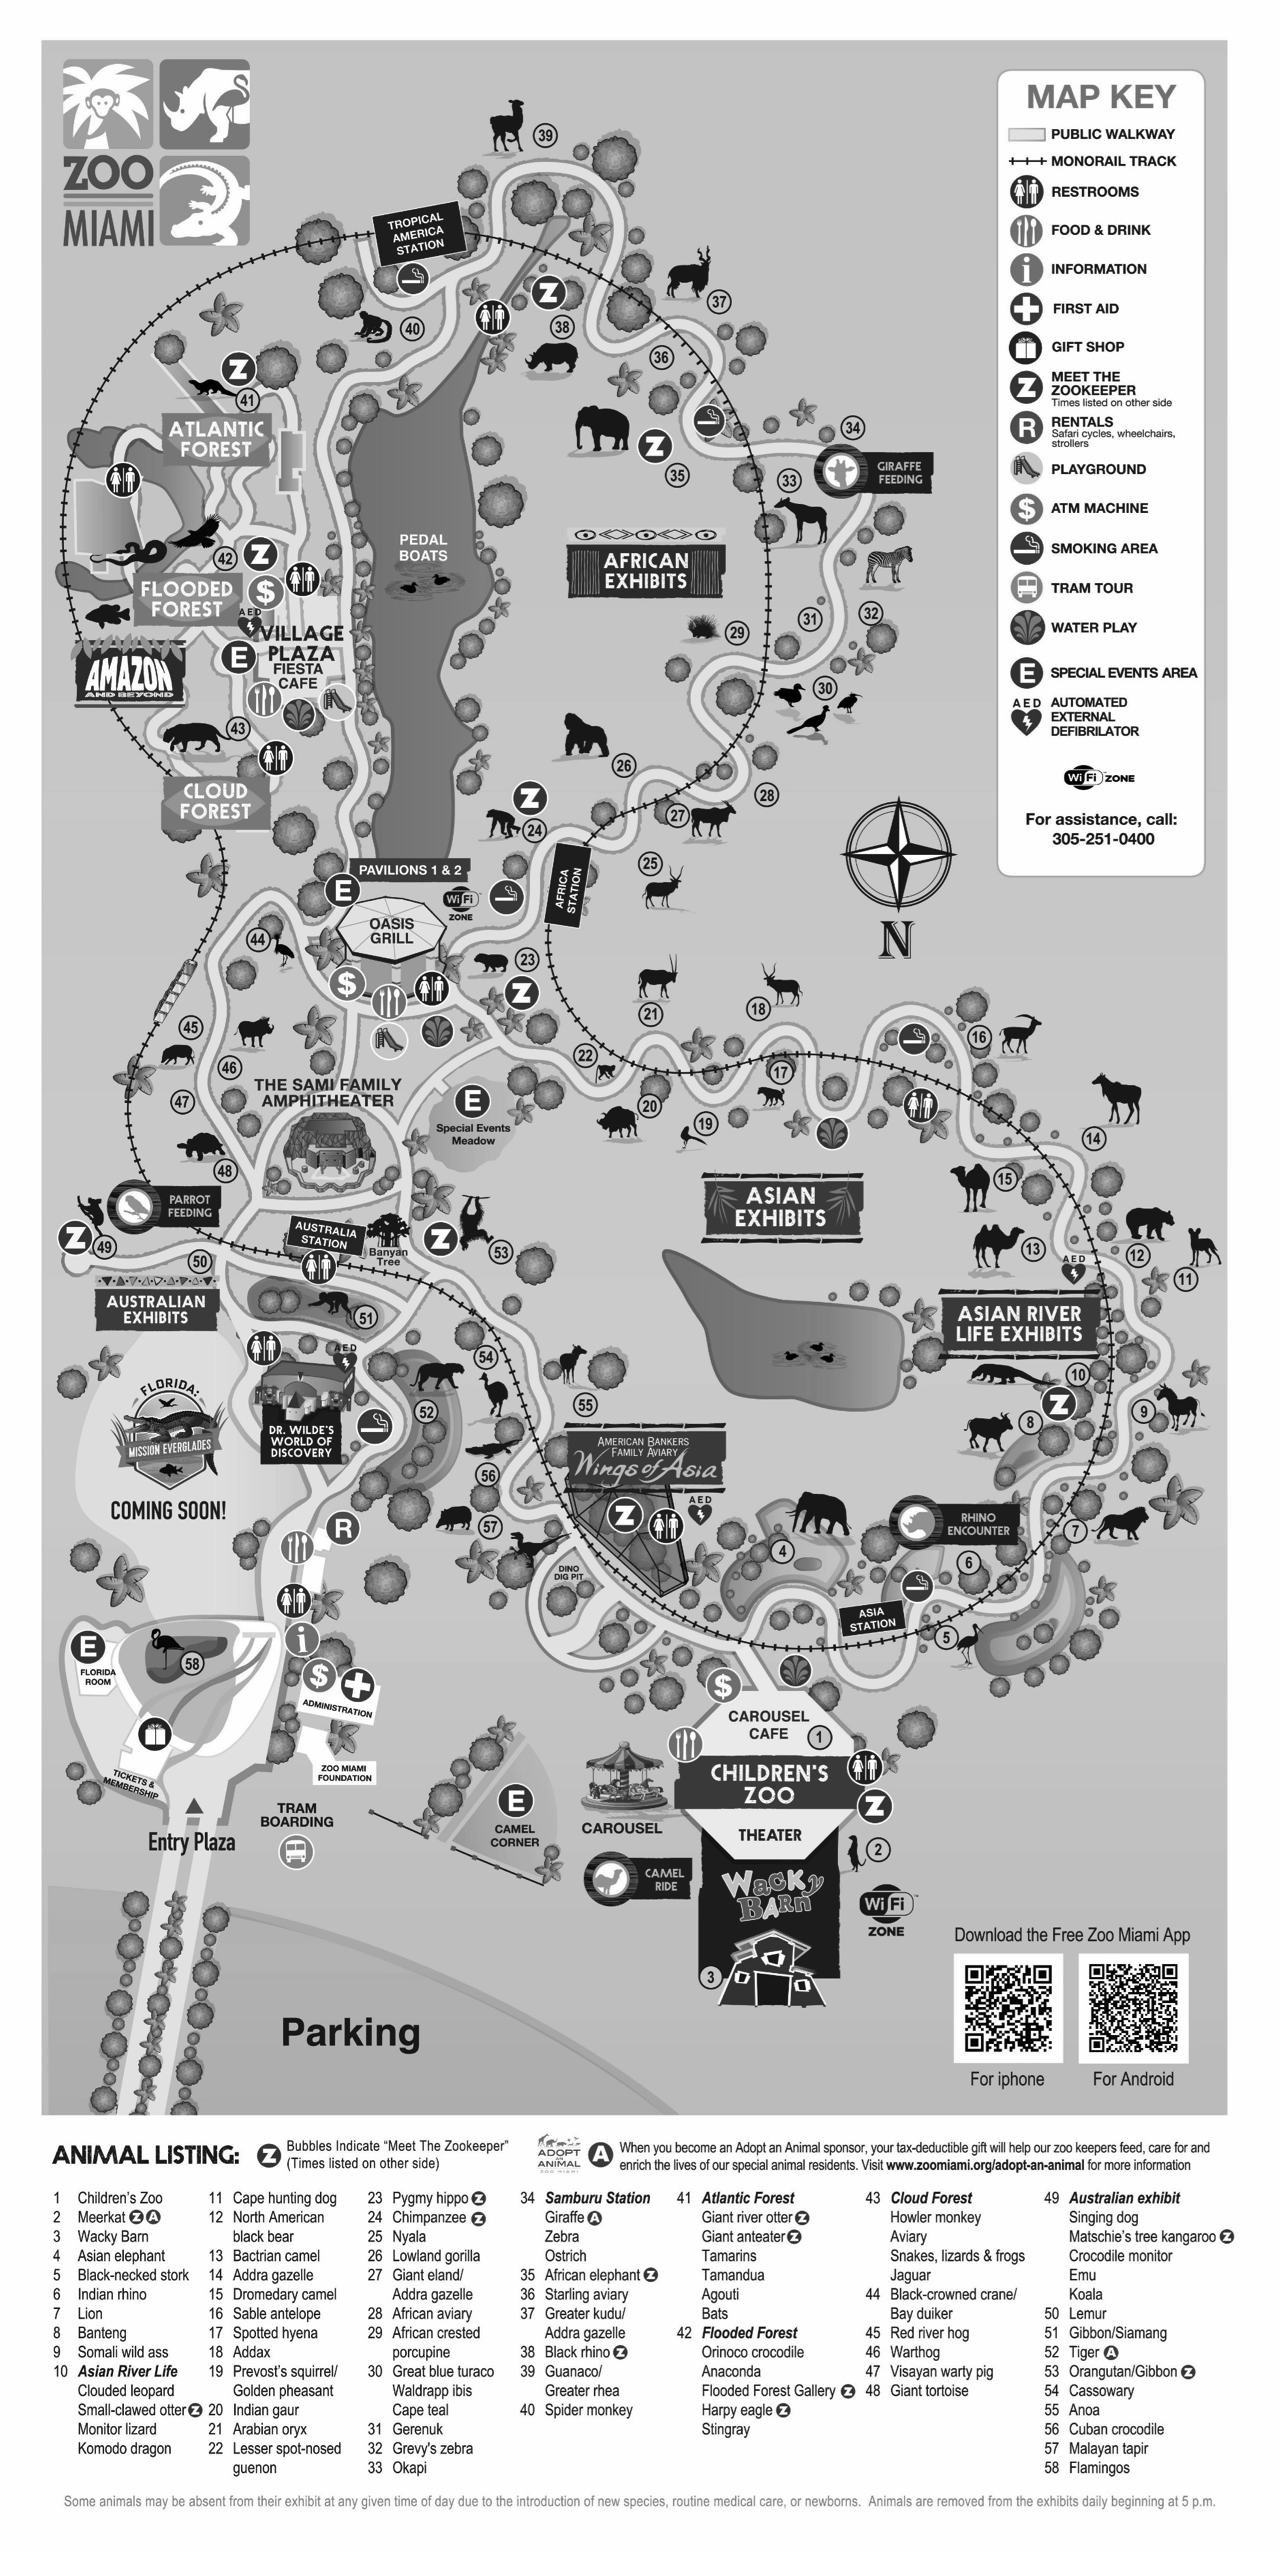 Wondering Where All The Pokestops And Gyms Are At Zoo Miami This Map Might Help Bring It Along This Weekend July 23 24 For Anot Pokemon Go Pokemon Pokestop